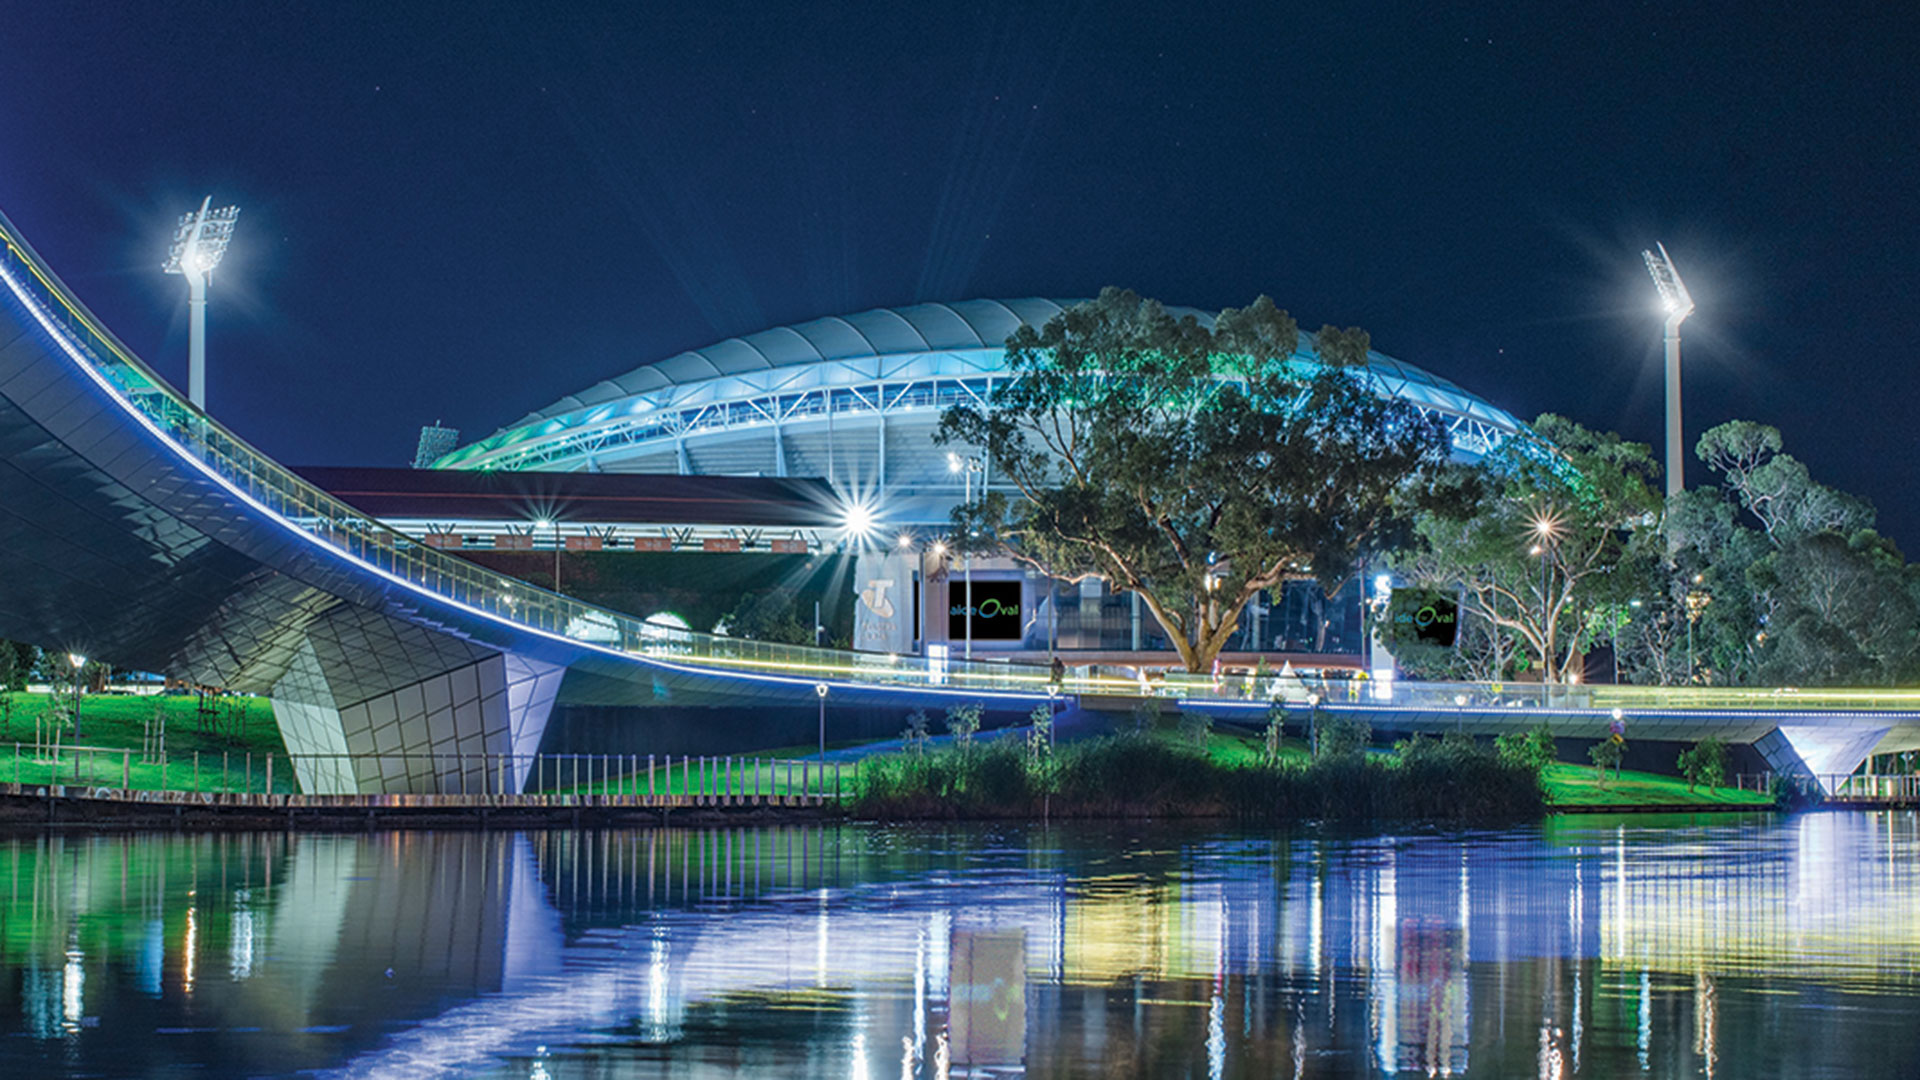 Adelaide Oval Awarded for Best Meeting Venue in Australia